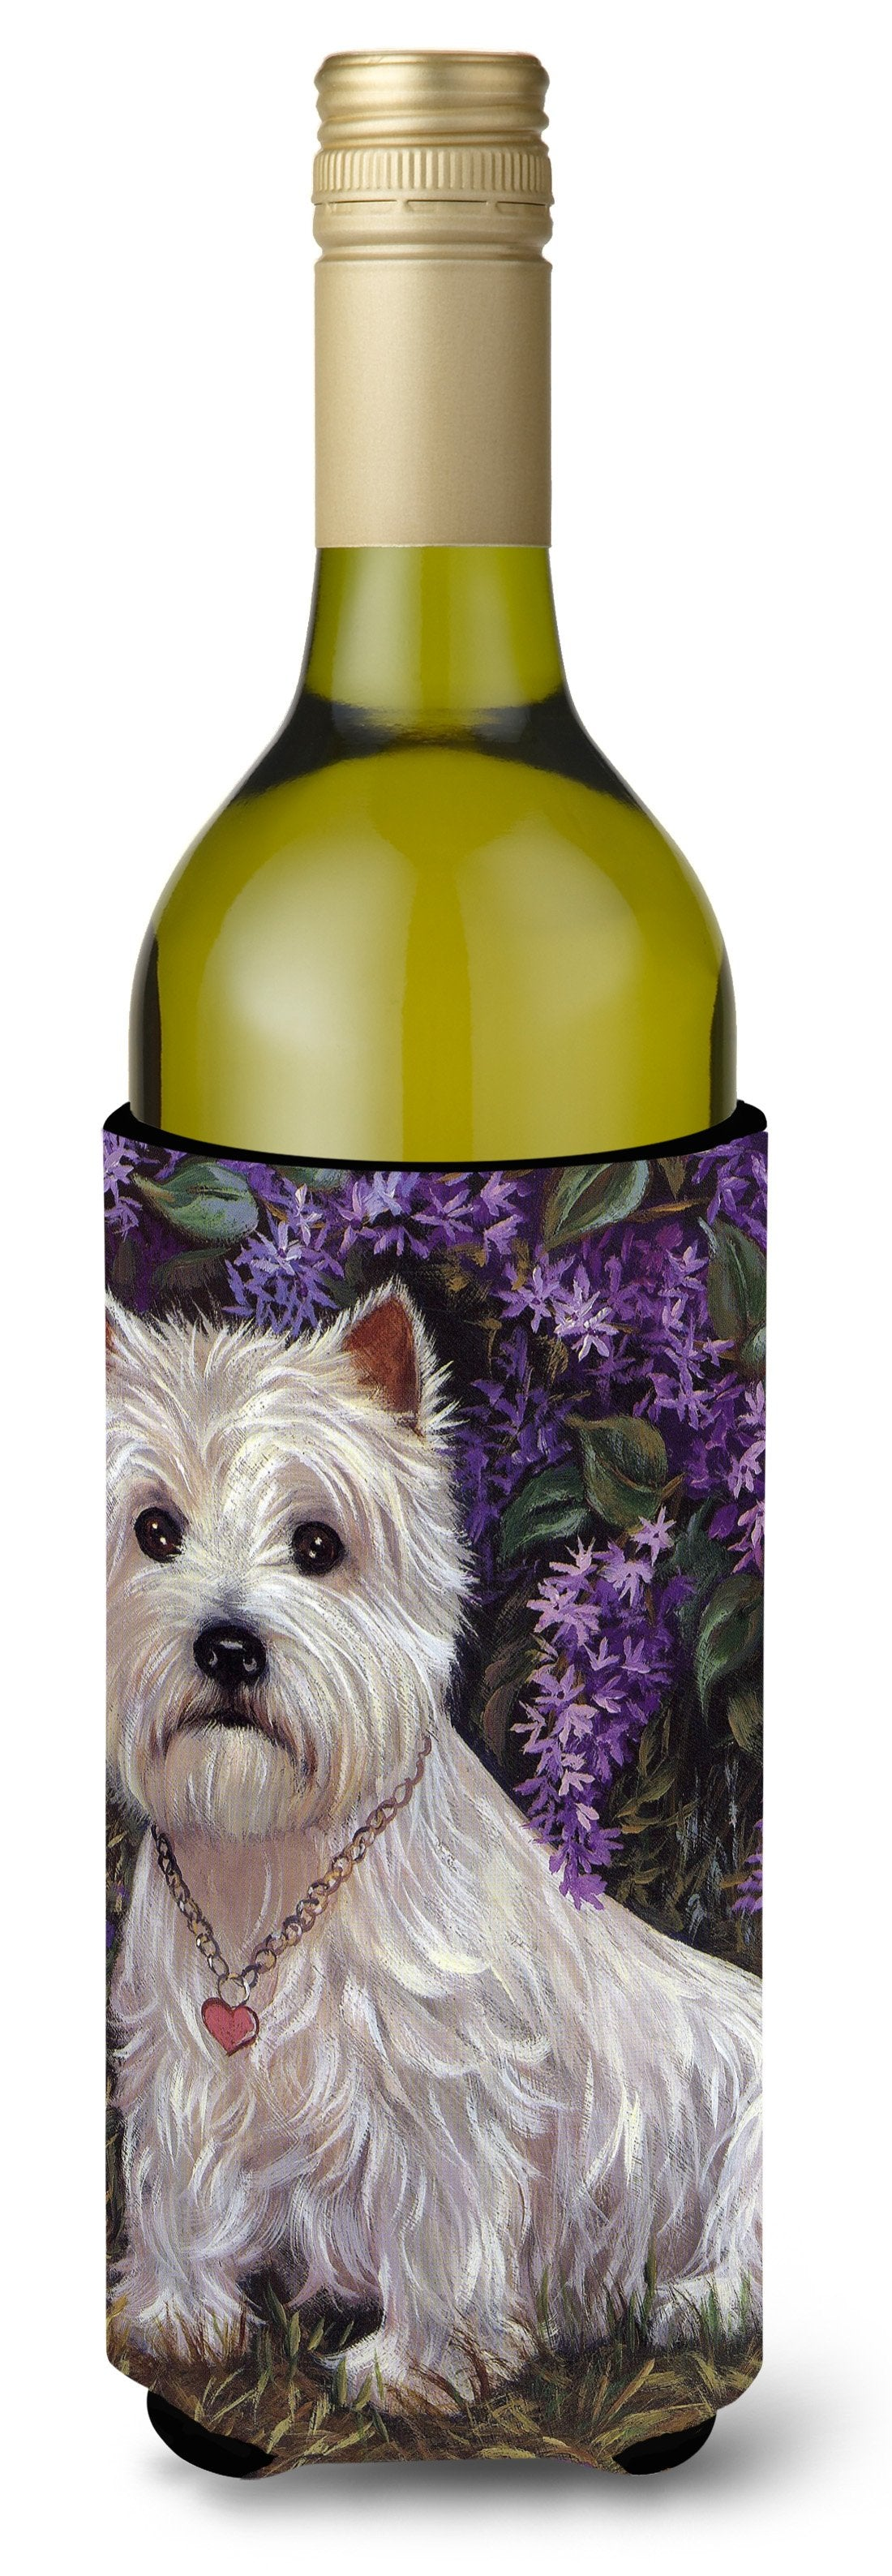 Westie Lily & Lilacs Wine Bottle Hugger PPP3216LITERK by Caroline's Treasures